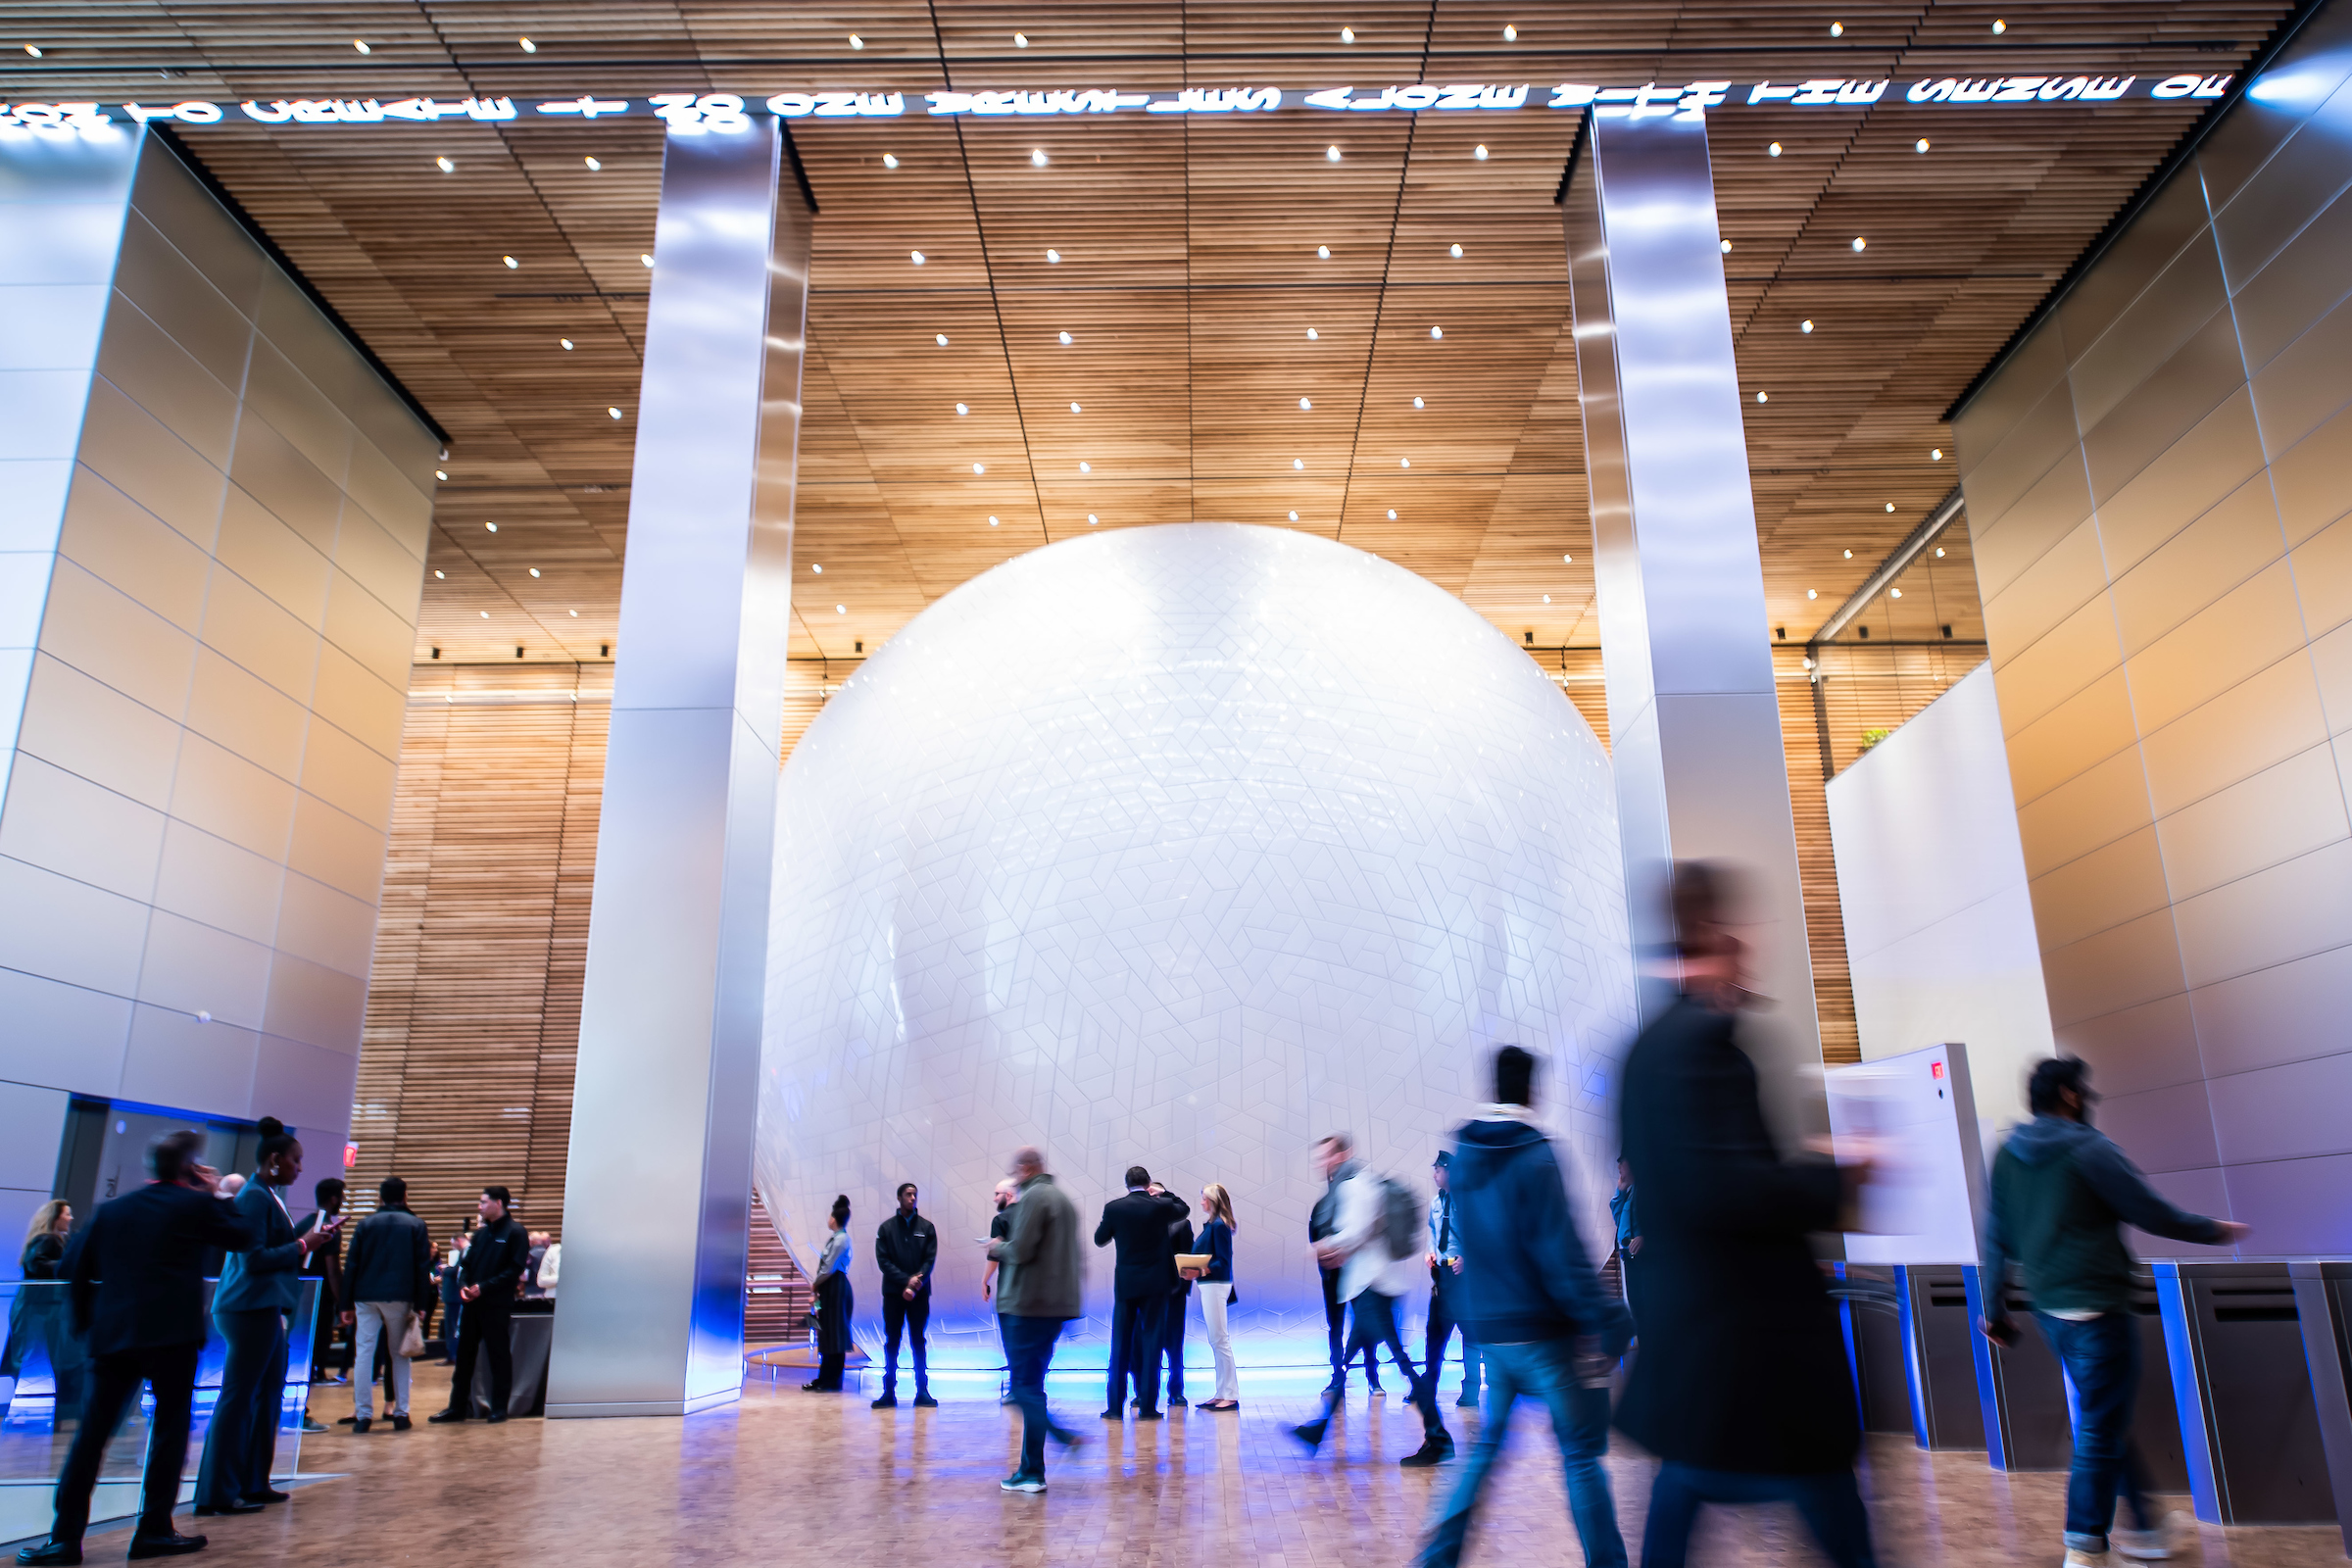 Comcast unveils the Universal Sphere inside Comcast Technology Center on Wednesday, April 17, 2019, in Philadelphia.